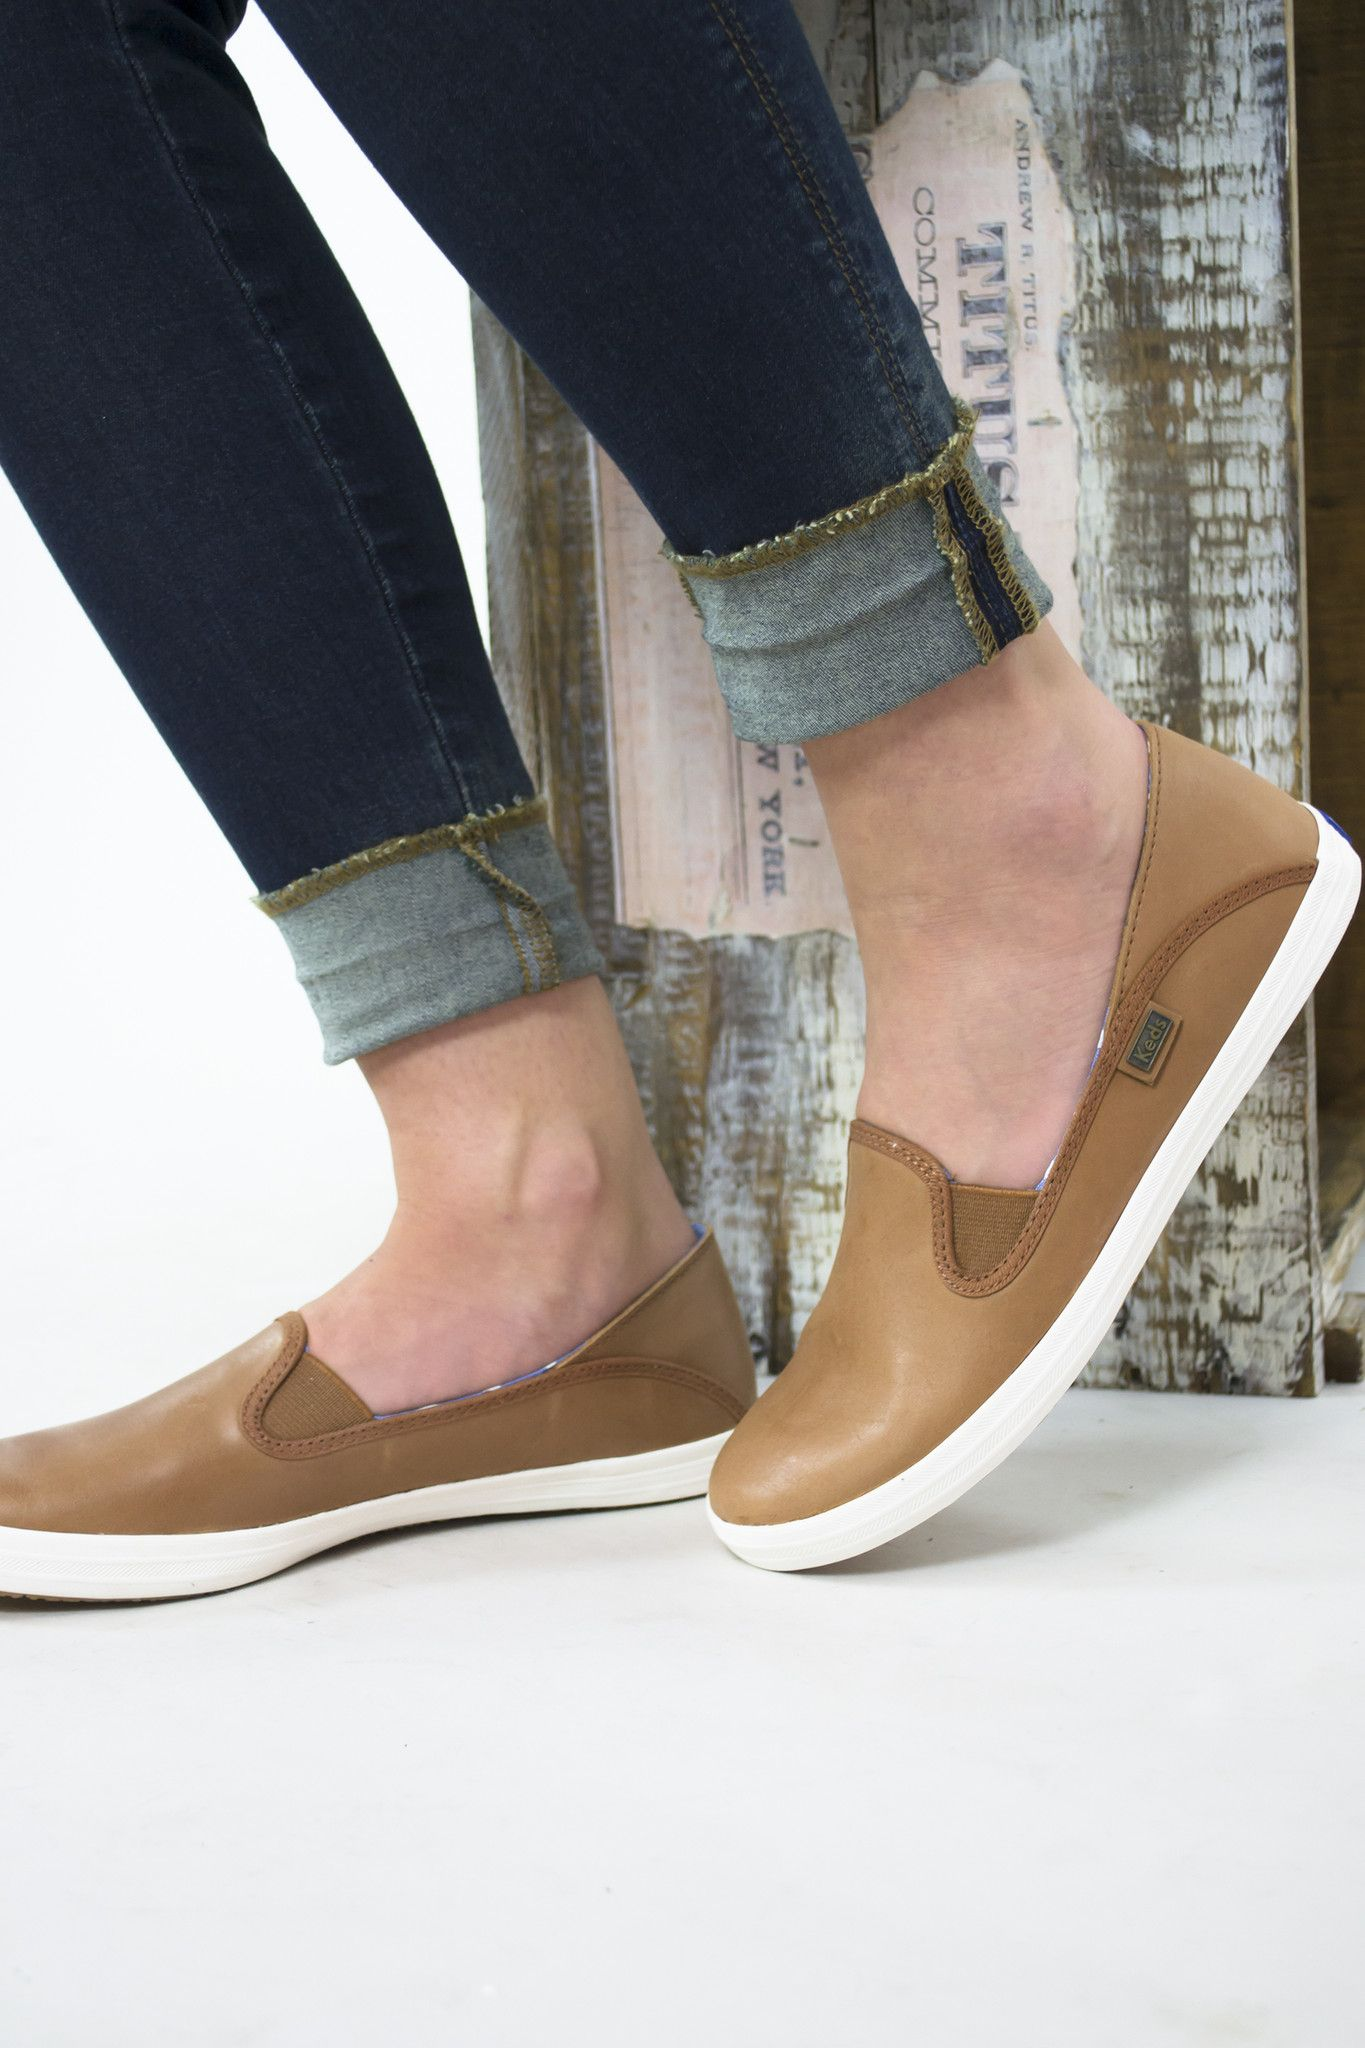 c4558dc4d352b Walk anywhere with these comfortable slip on Keds! You can collapse the  back and wear